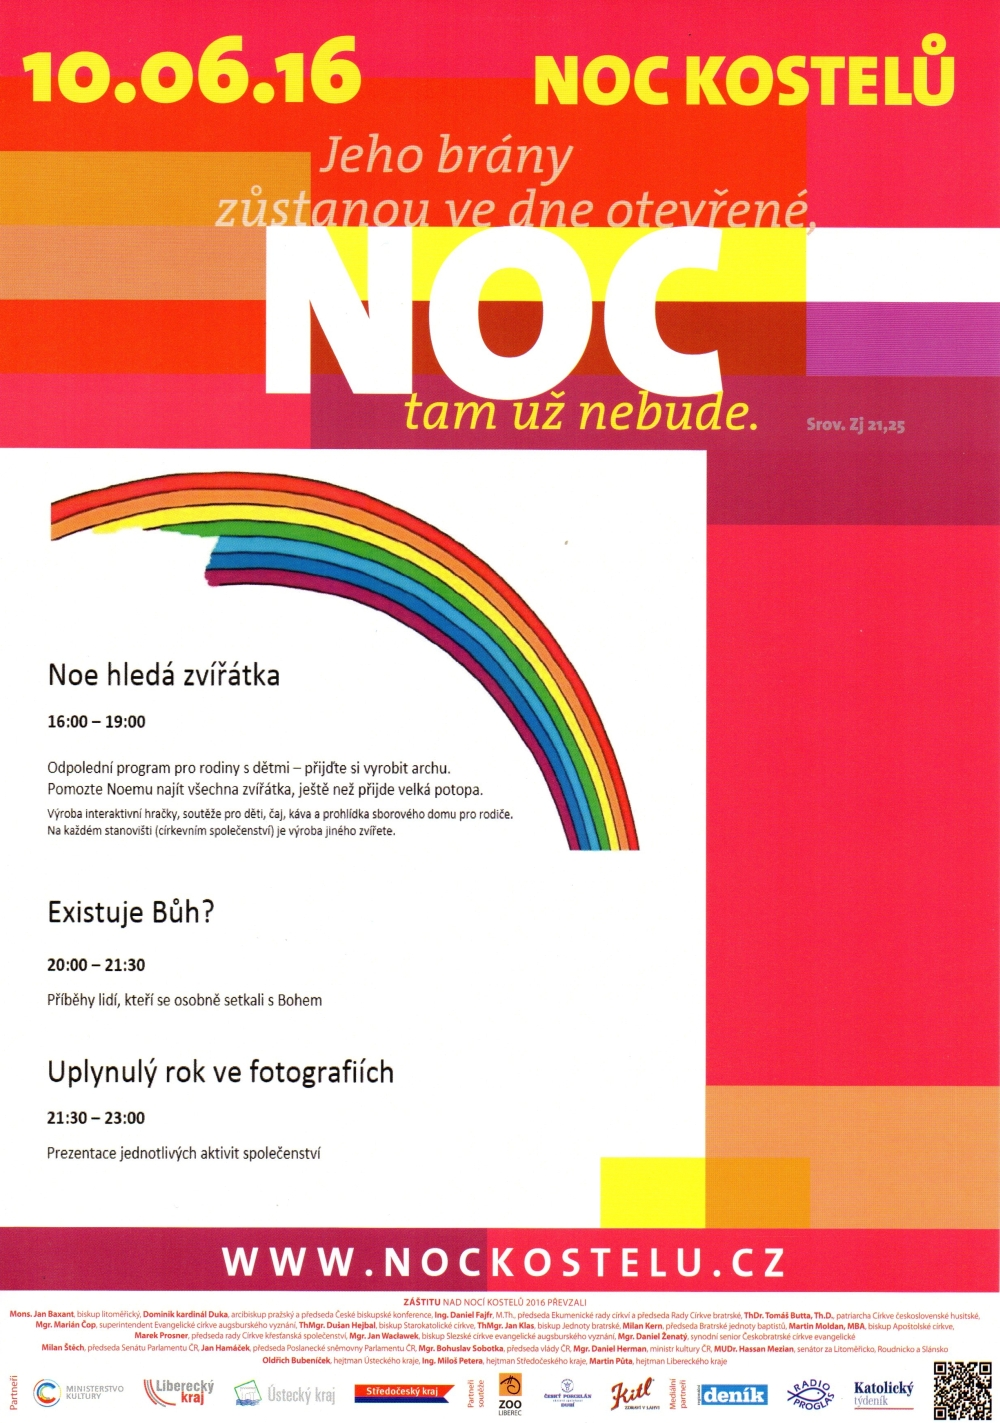 Noc kostelu program 1.jpg